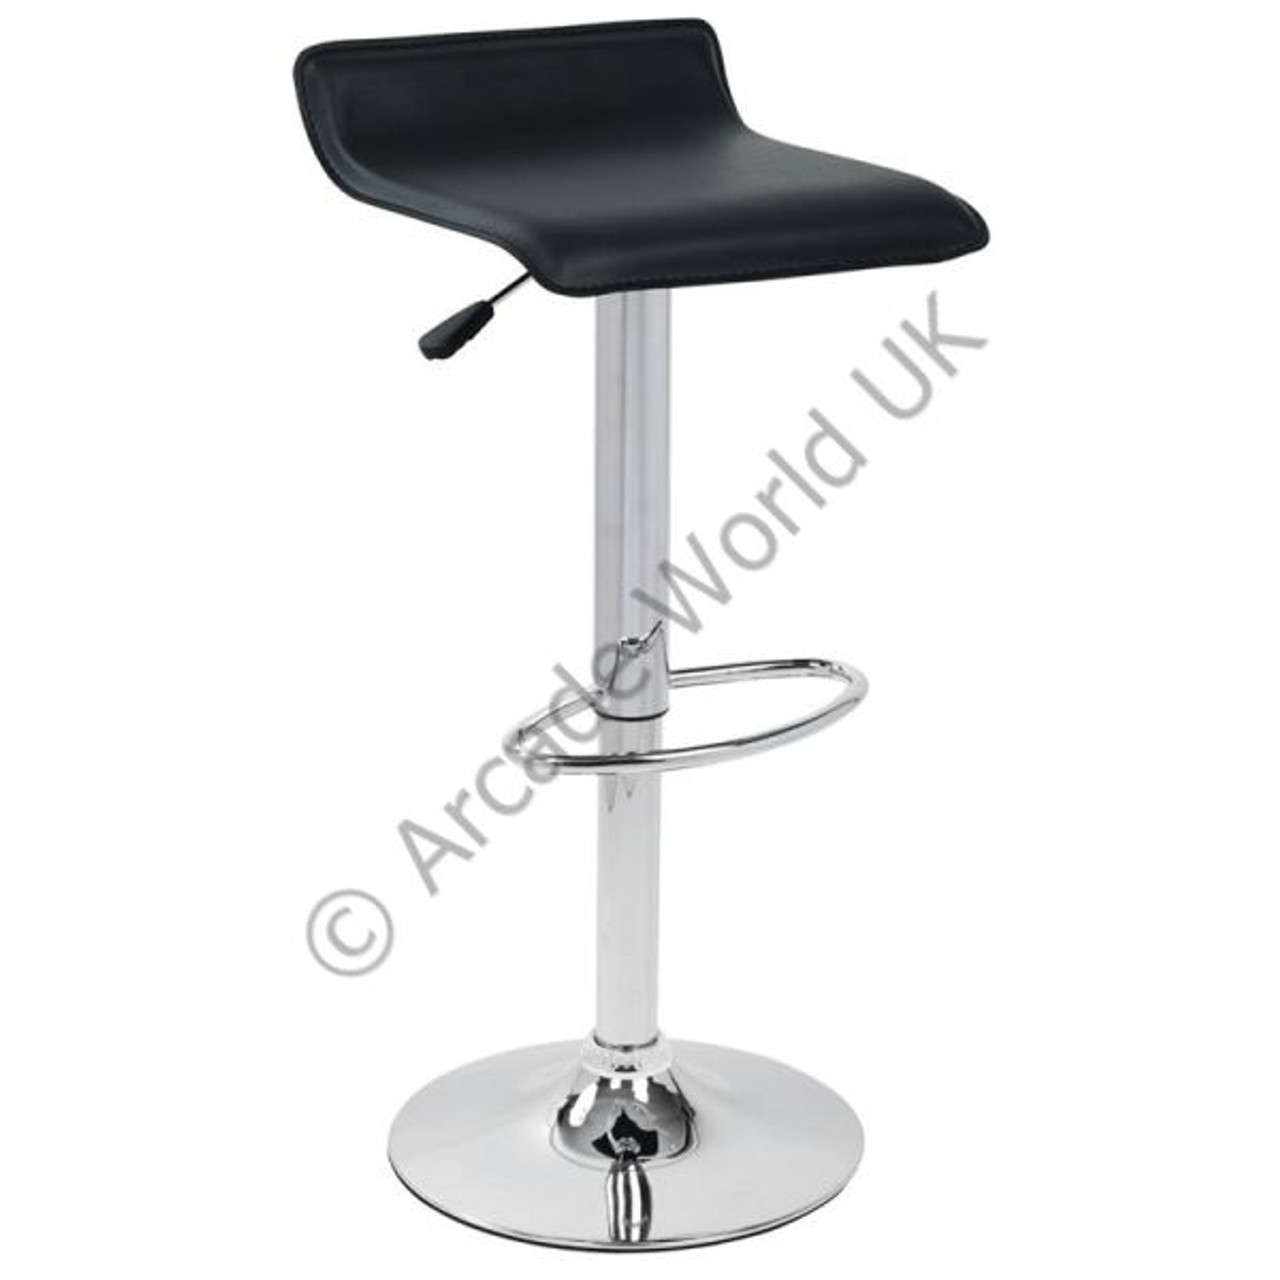 Fabulous Baceno Chrome Bar Stool Creativecarmelina Interior Chair Design Creativecarmelinacom